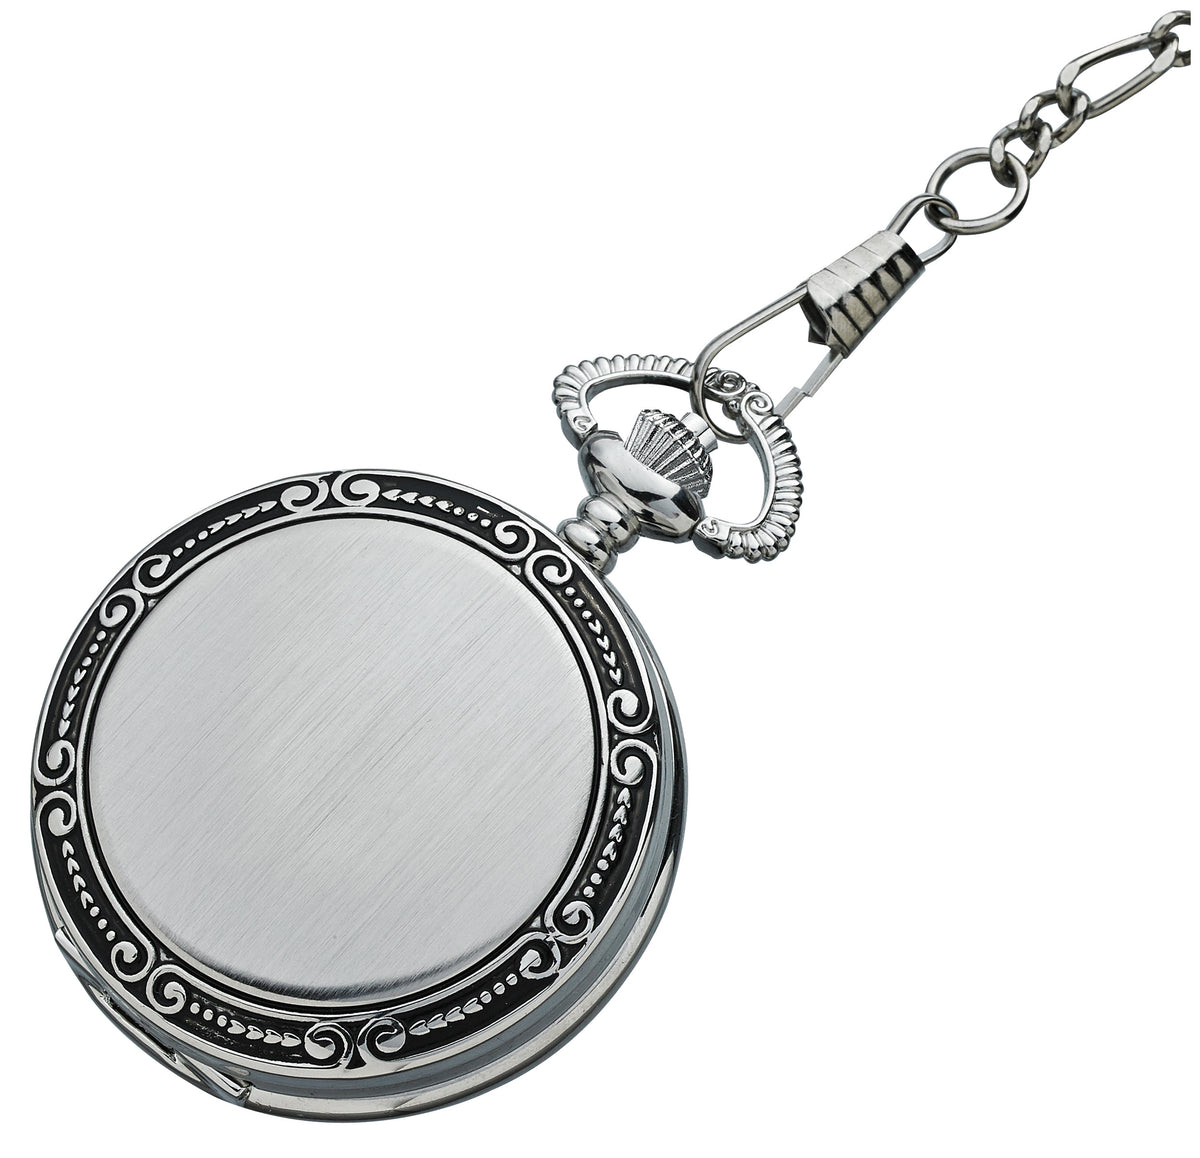 Alpine Quartz Pocket Watch - Silver with Photoframe